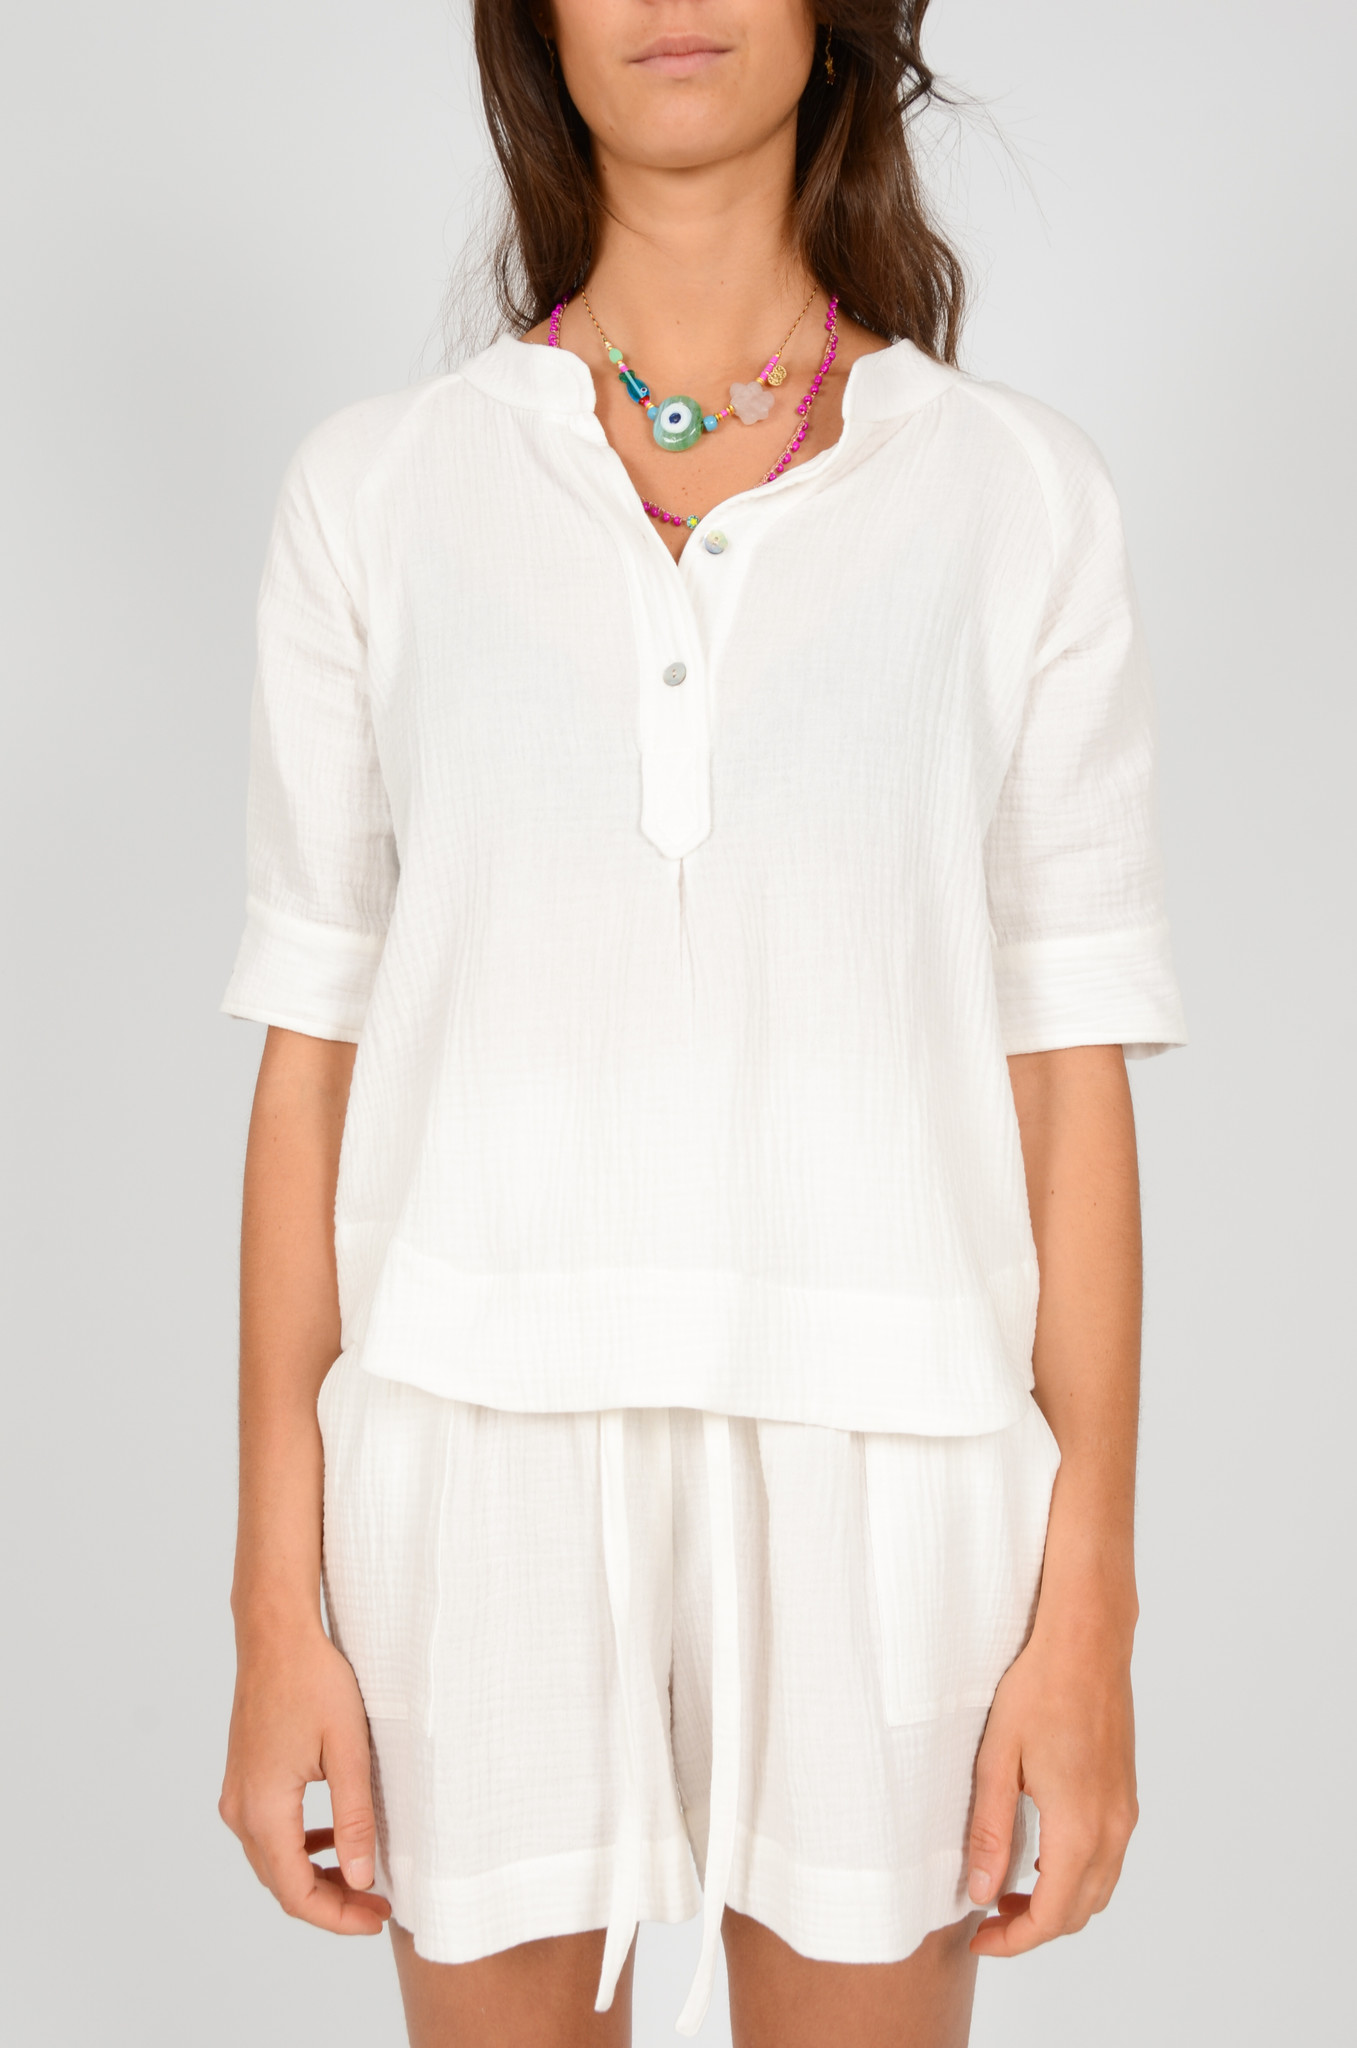 THEA SHIRT IN WHITE-1